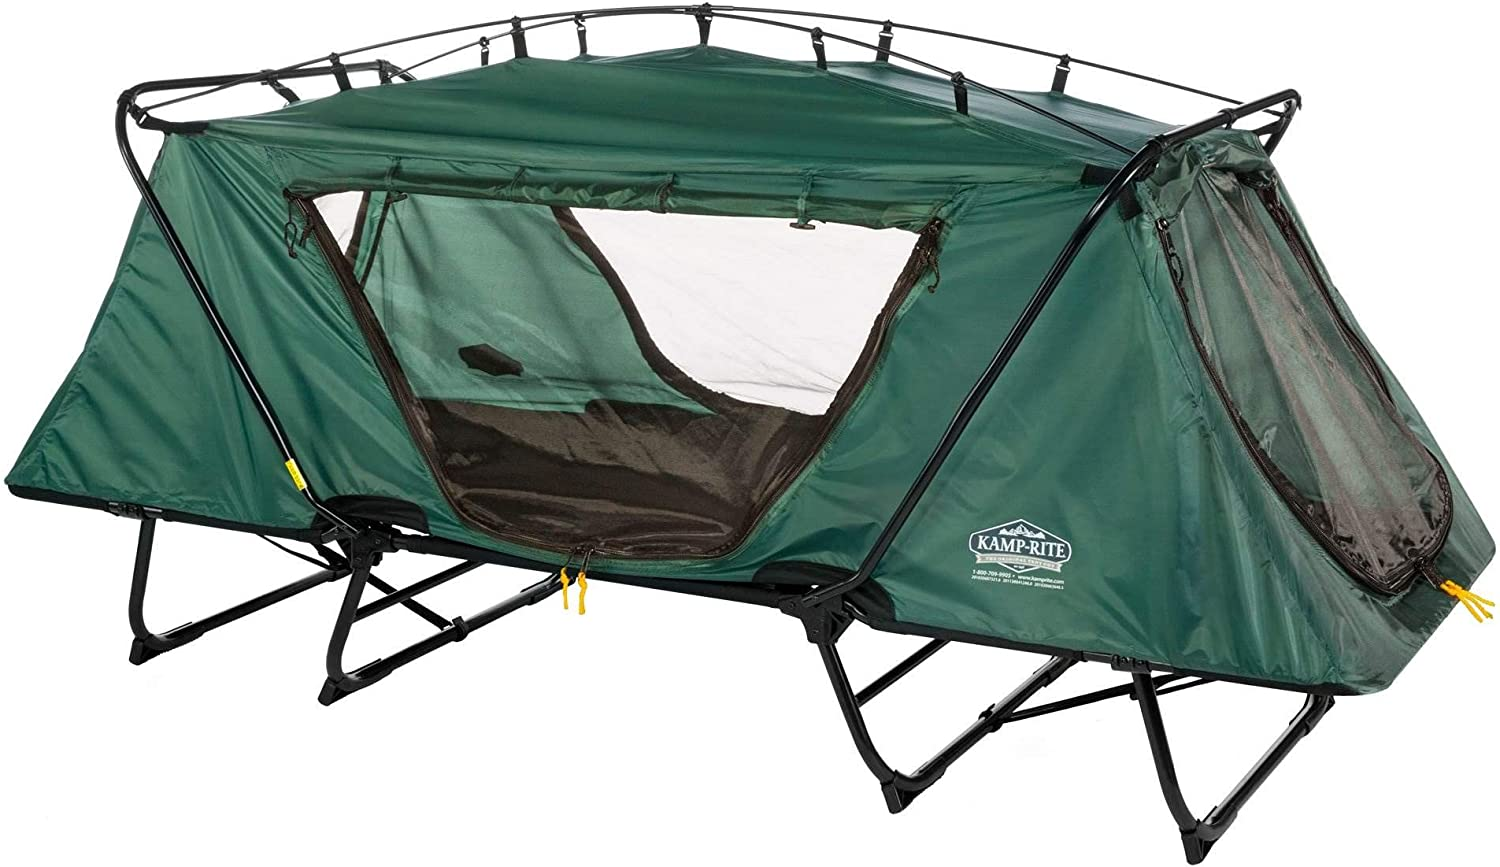 Kamp-Rite Oversize Tent Cot – Most Functional & Well-Designed Tent